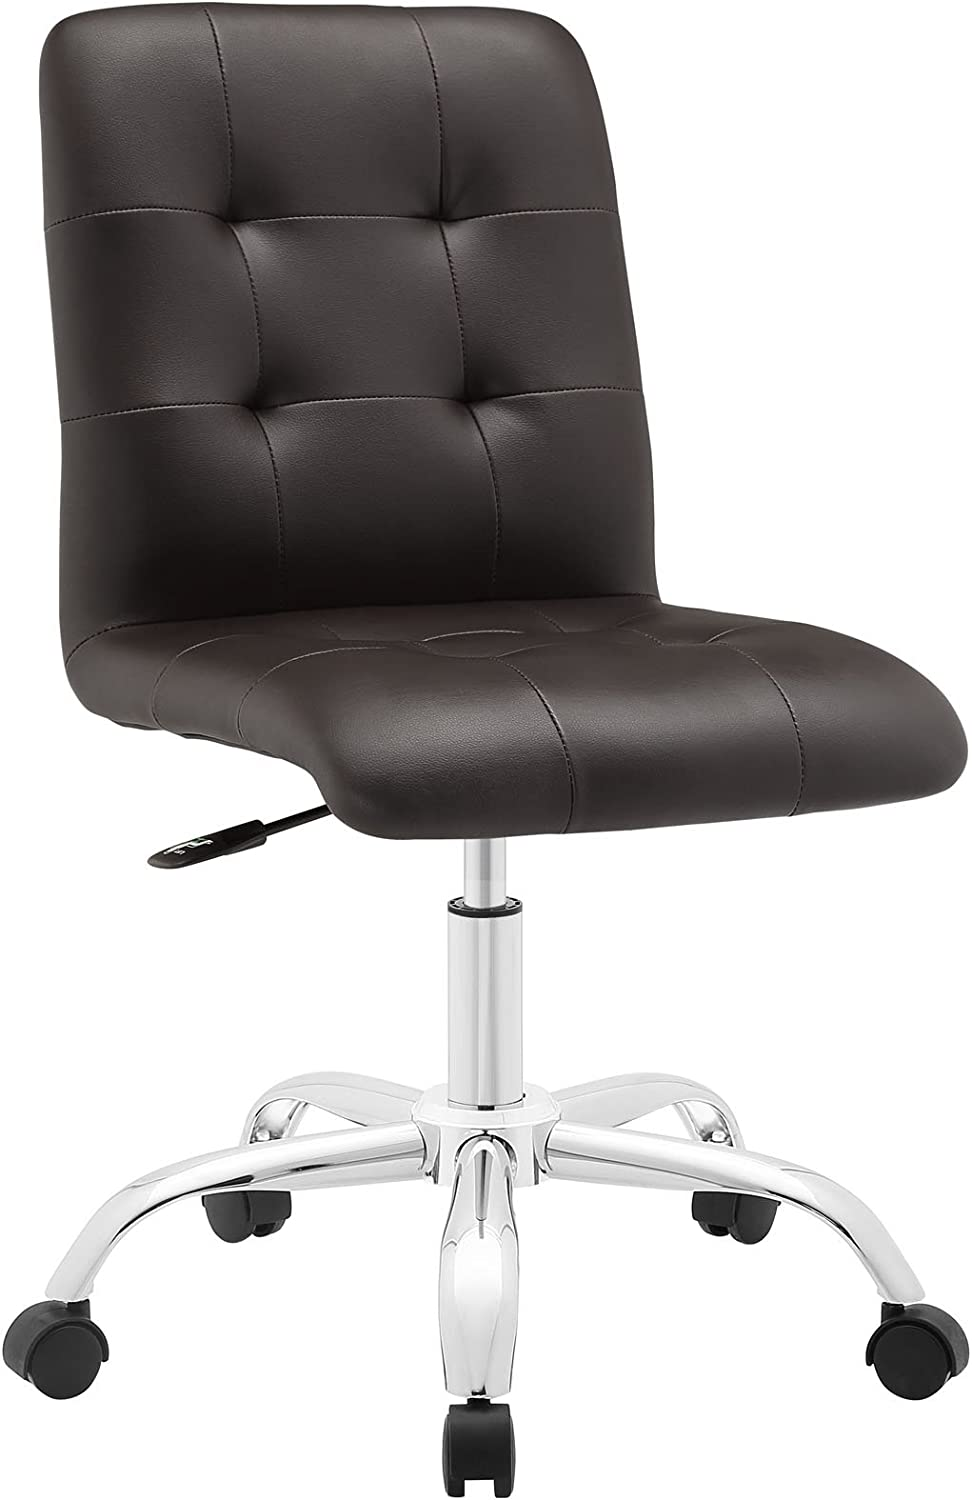 Modway Prim Mid Back Office Chair, Brown